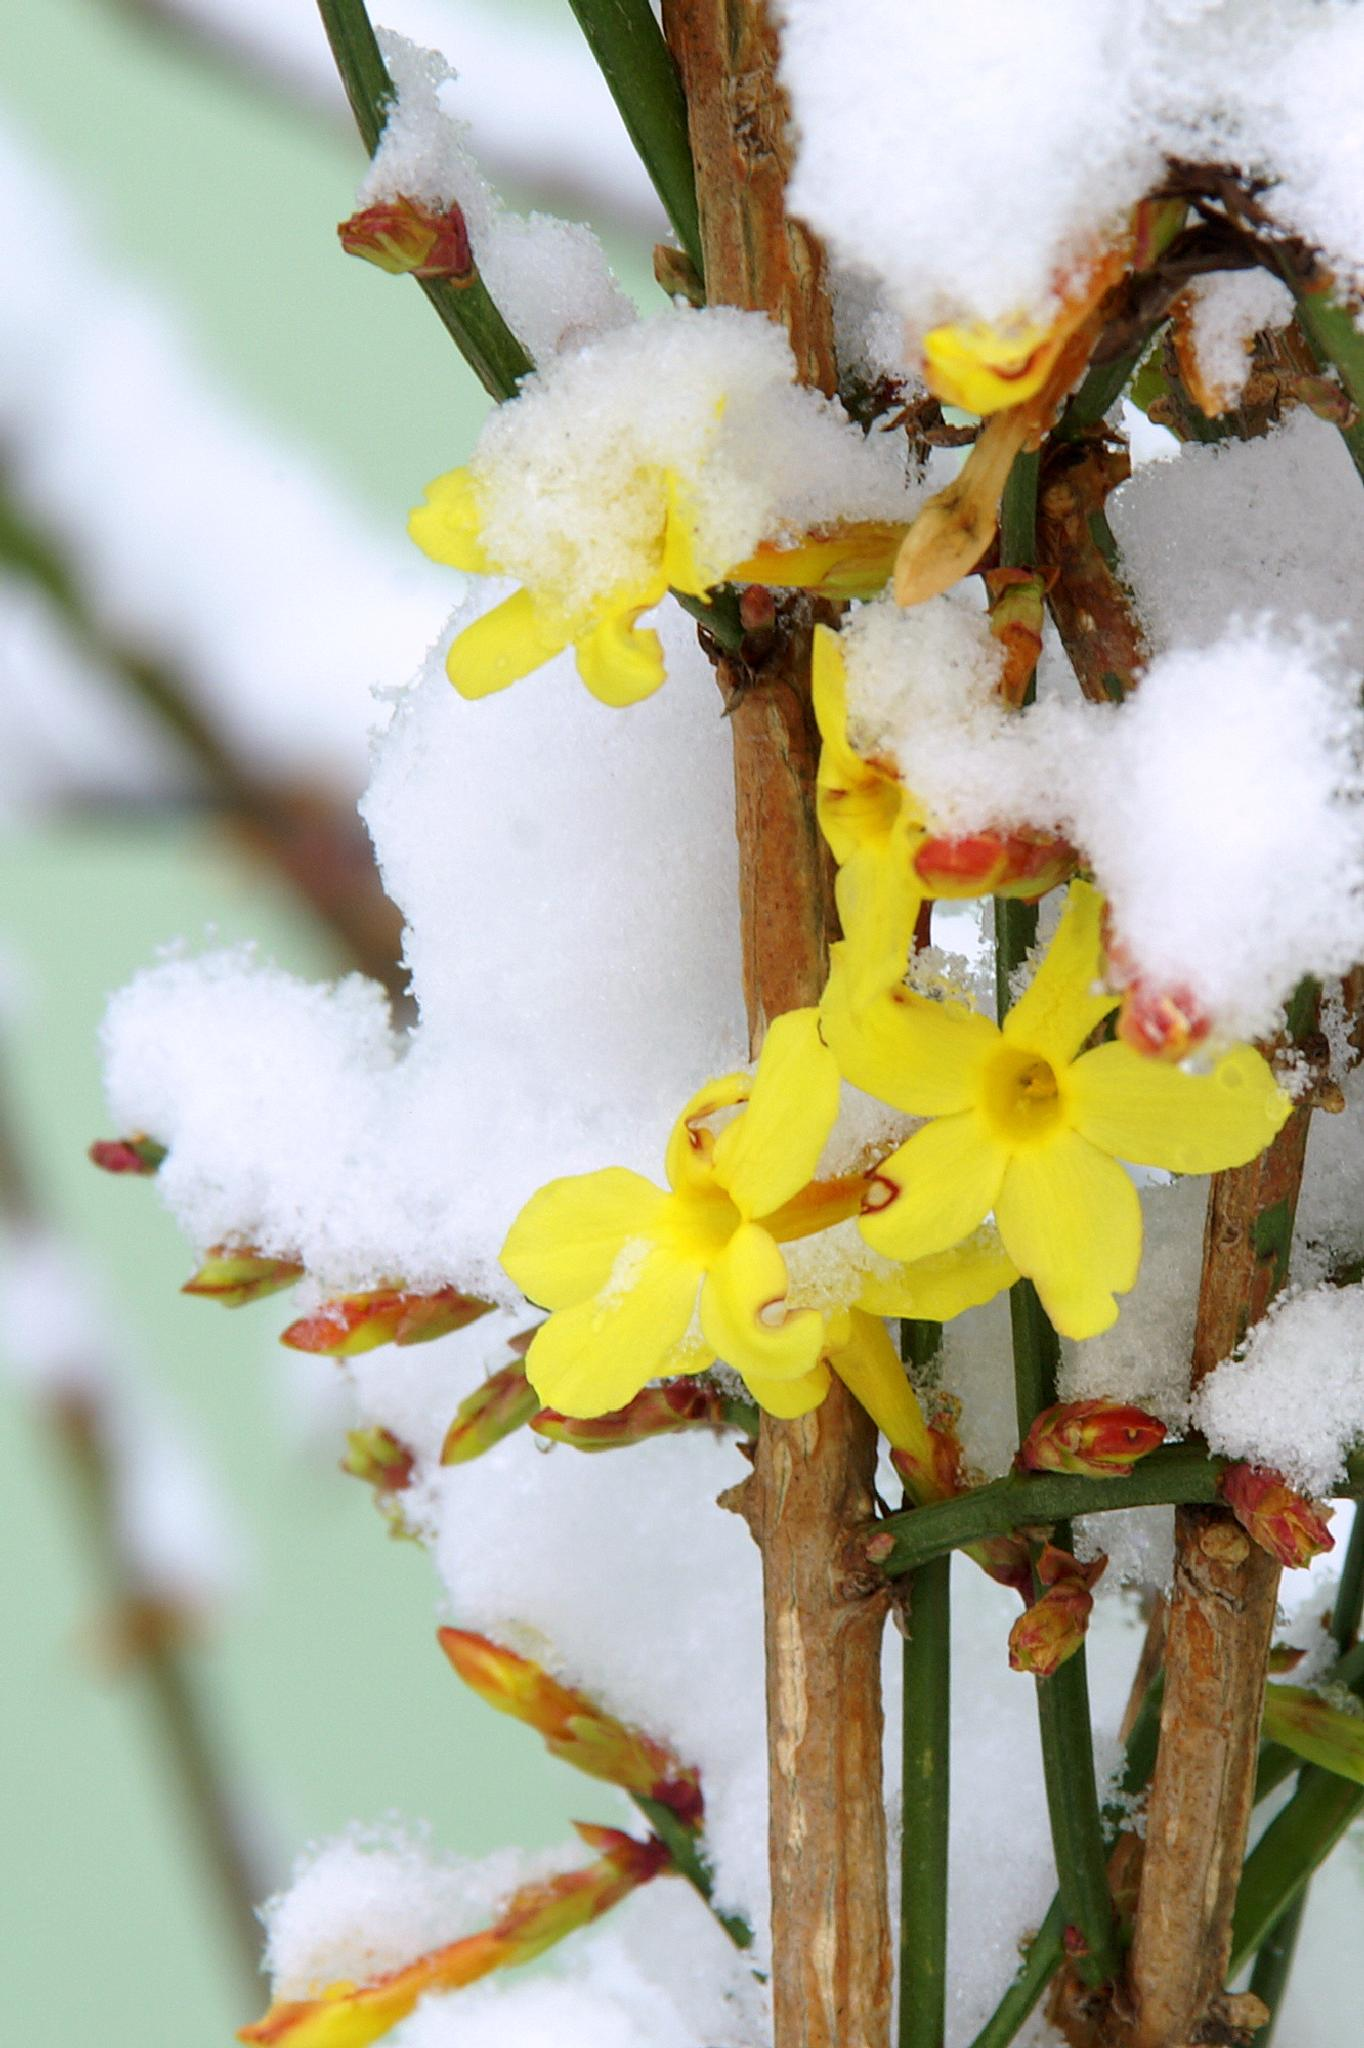 flowers and snow by rosici.miroslav